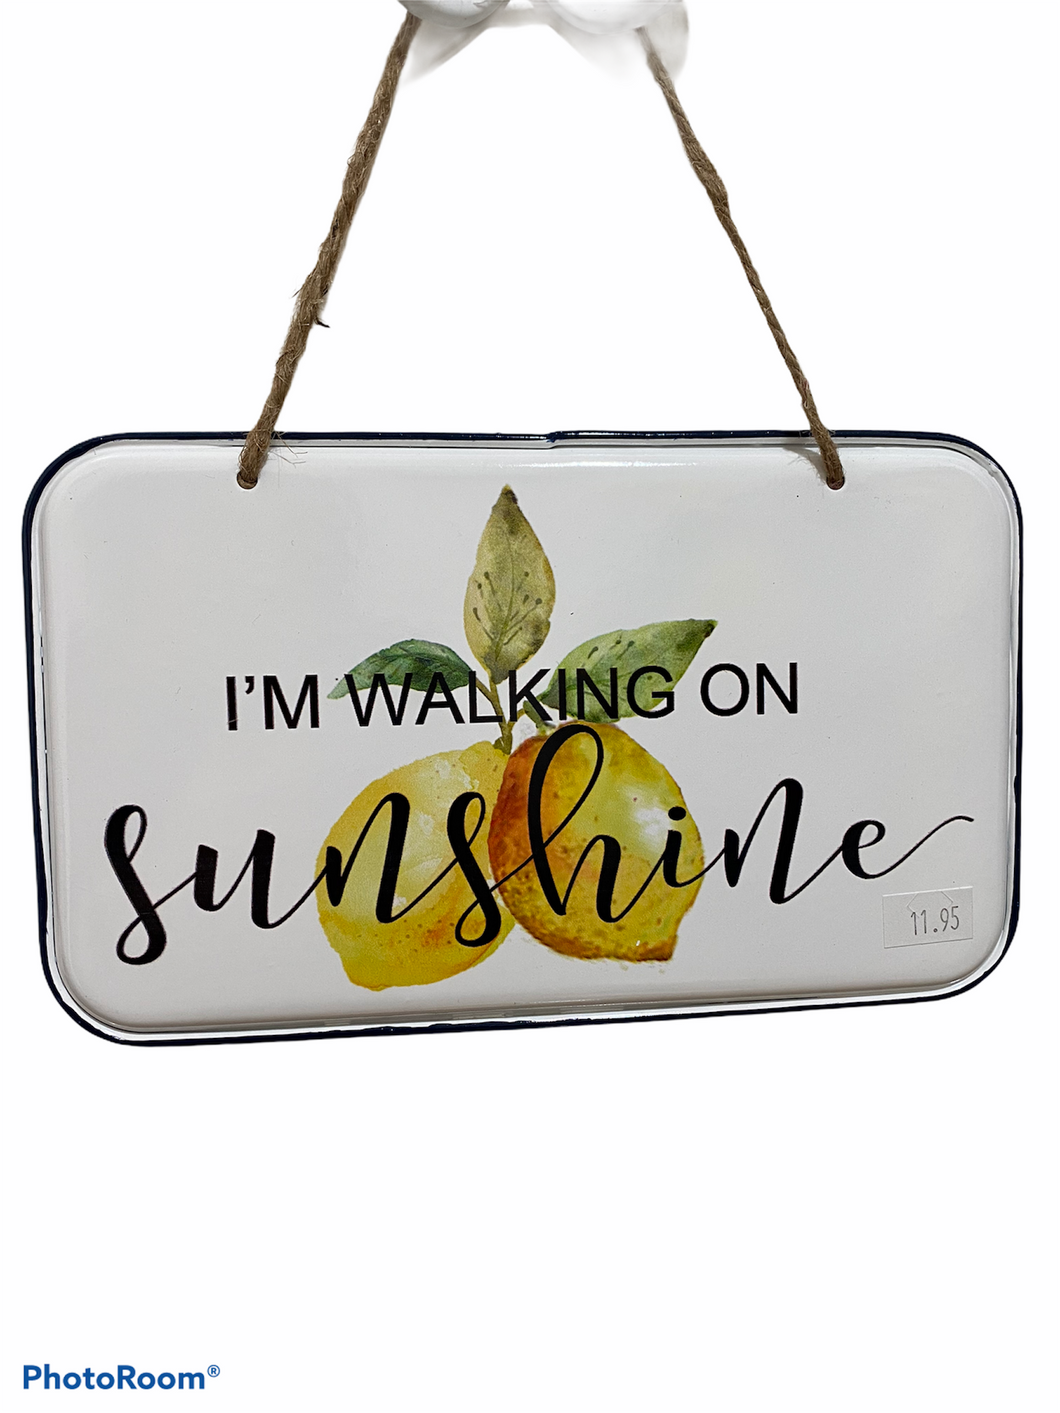 I'm Walking on Sunshine Pressed Enamel Metal Lemon Wall Sign